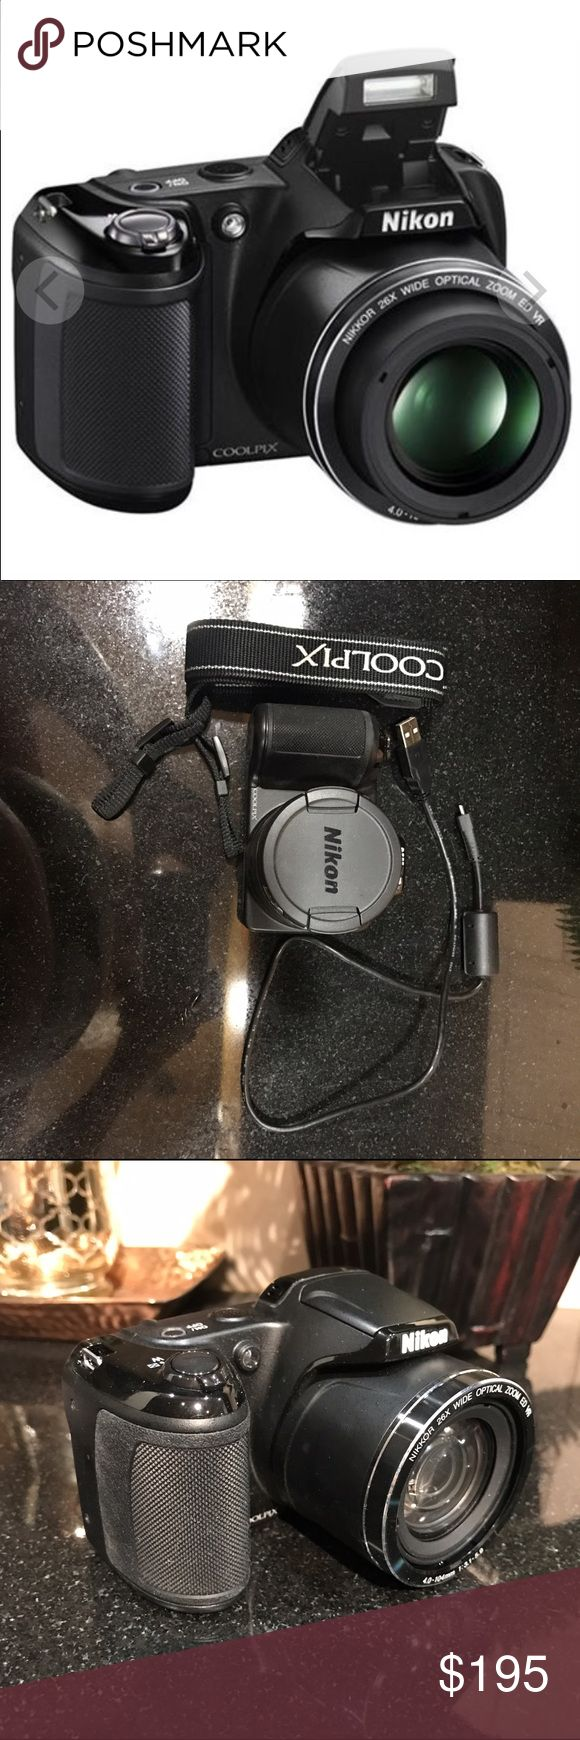 Nikon Coolpix L330 20.2 MP Camera Like new camera - I bought this for a trip and used it one time. Camera comes with batteries, strap, and connector cable. Nikon Other